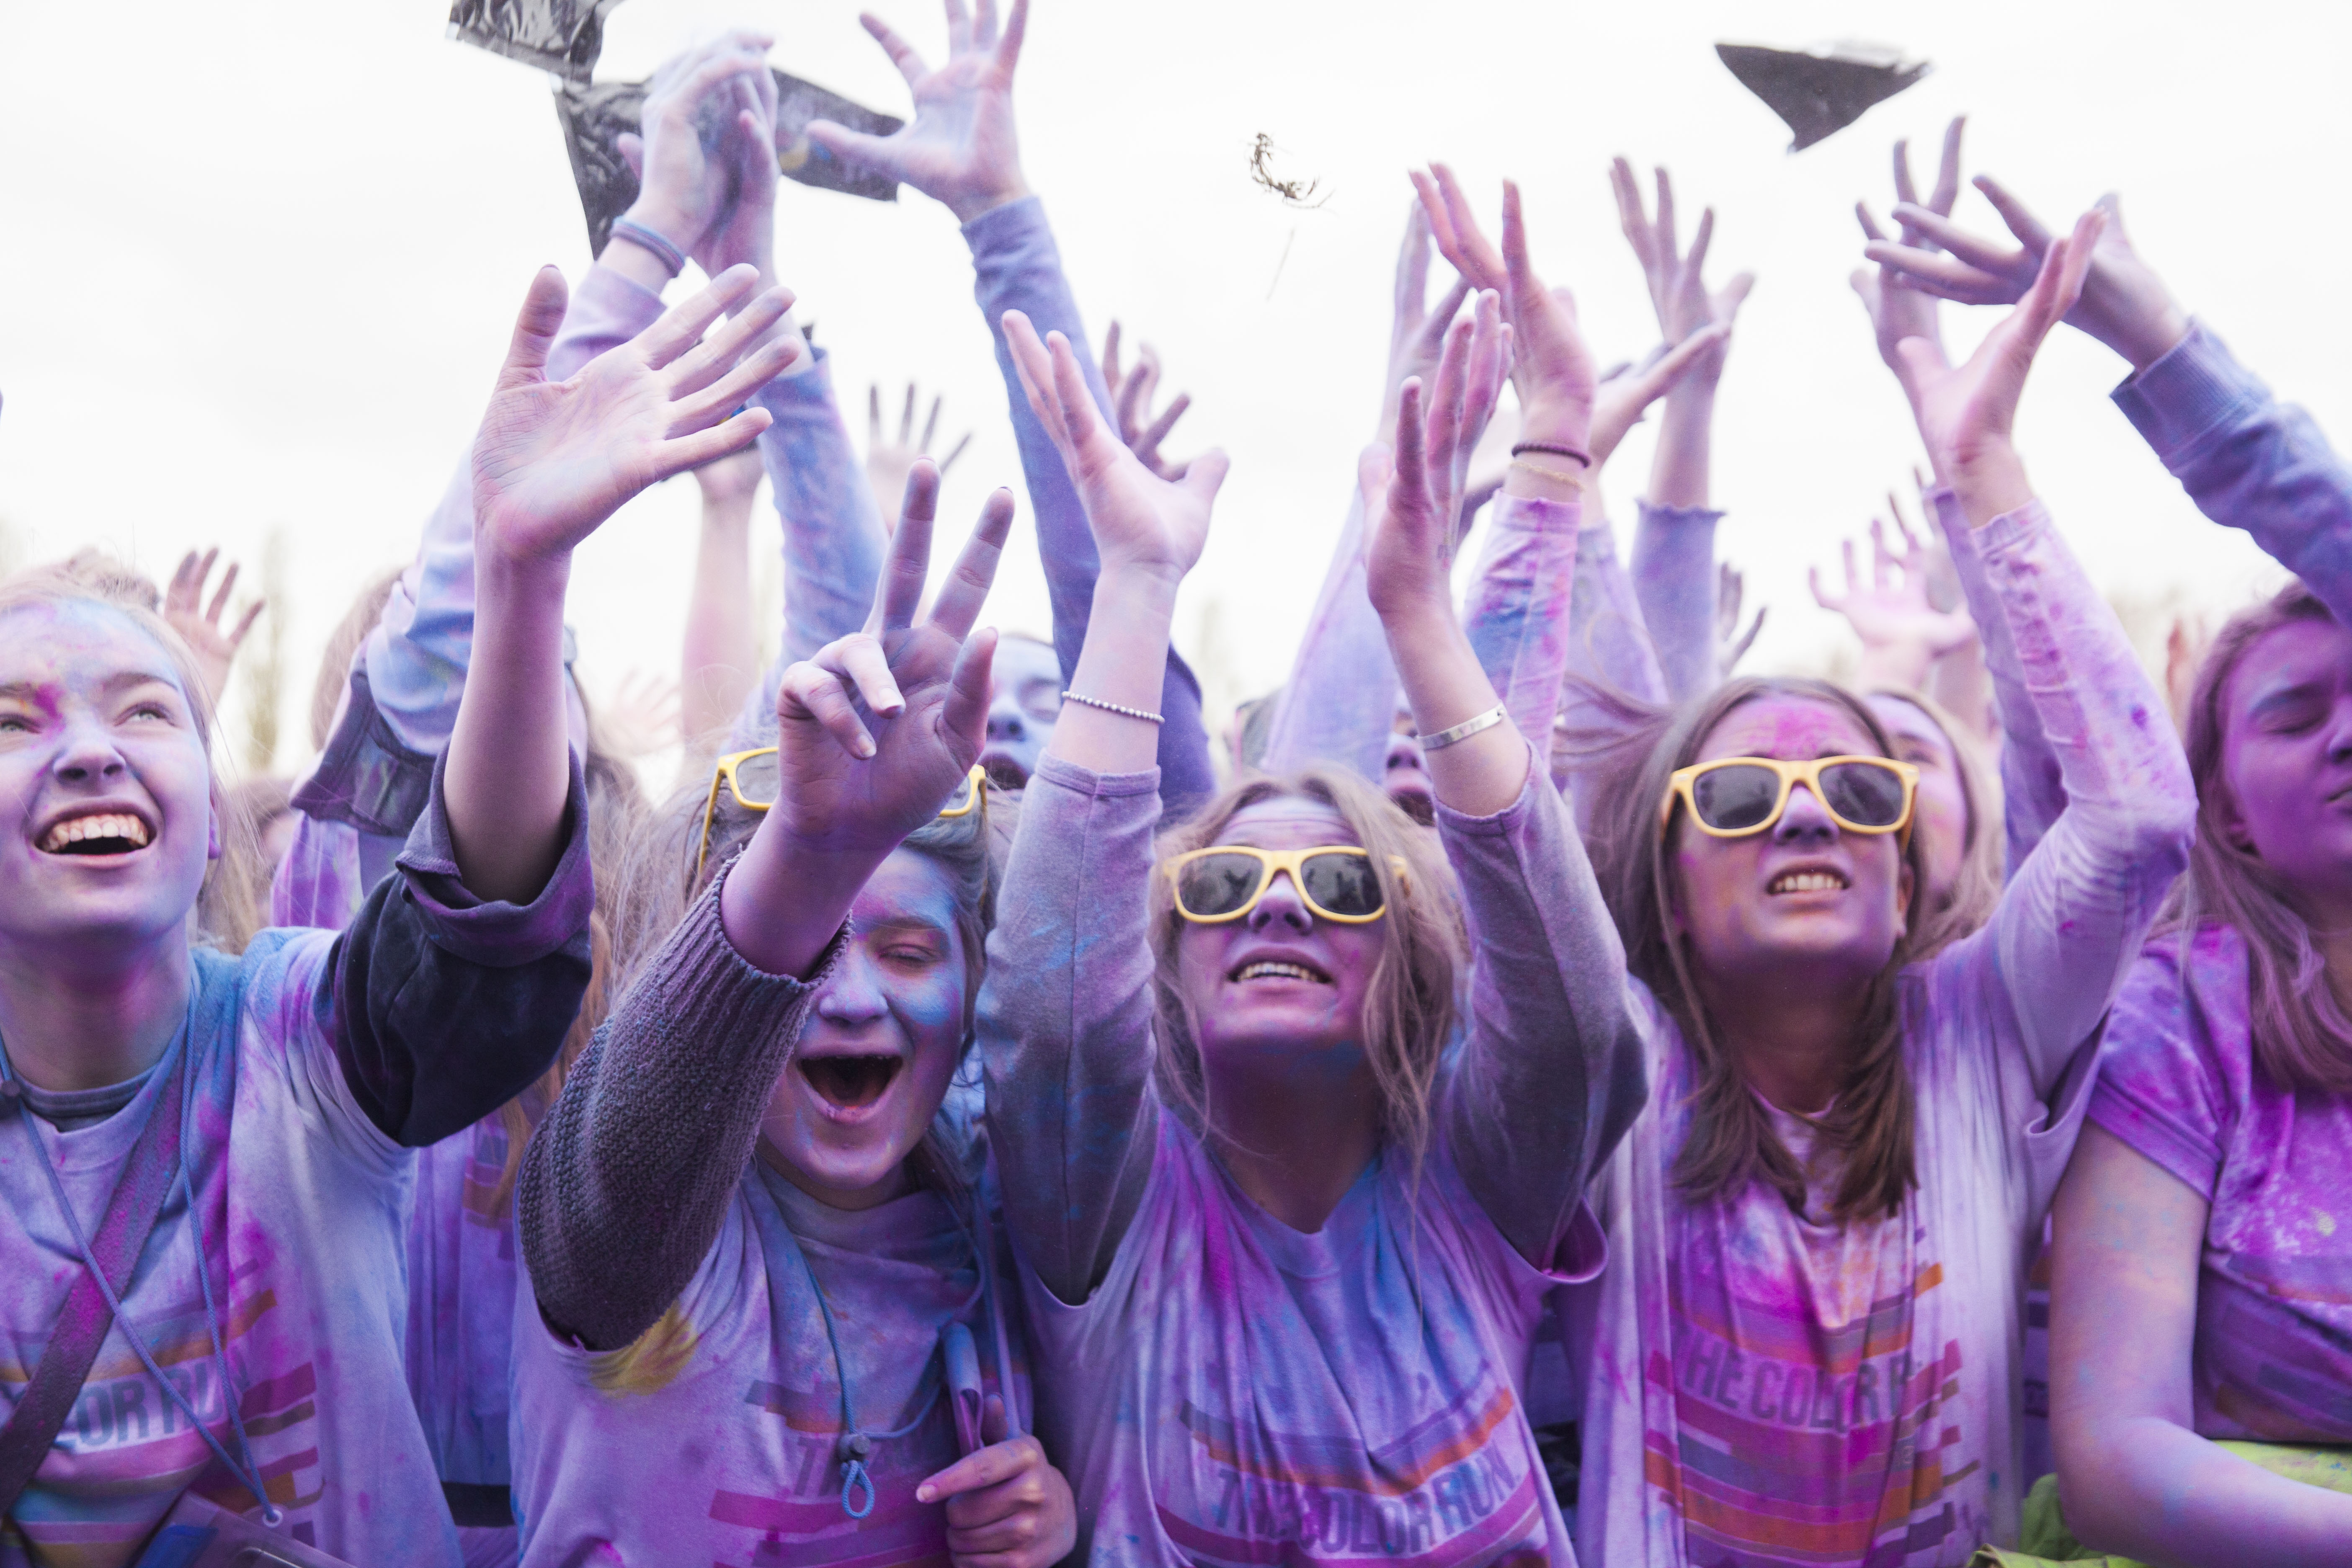 TheColorRun2015_HelenaLundquist_mindre_11